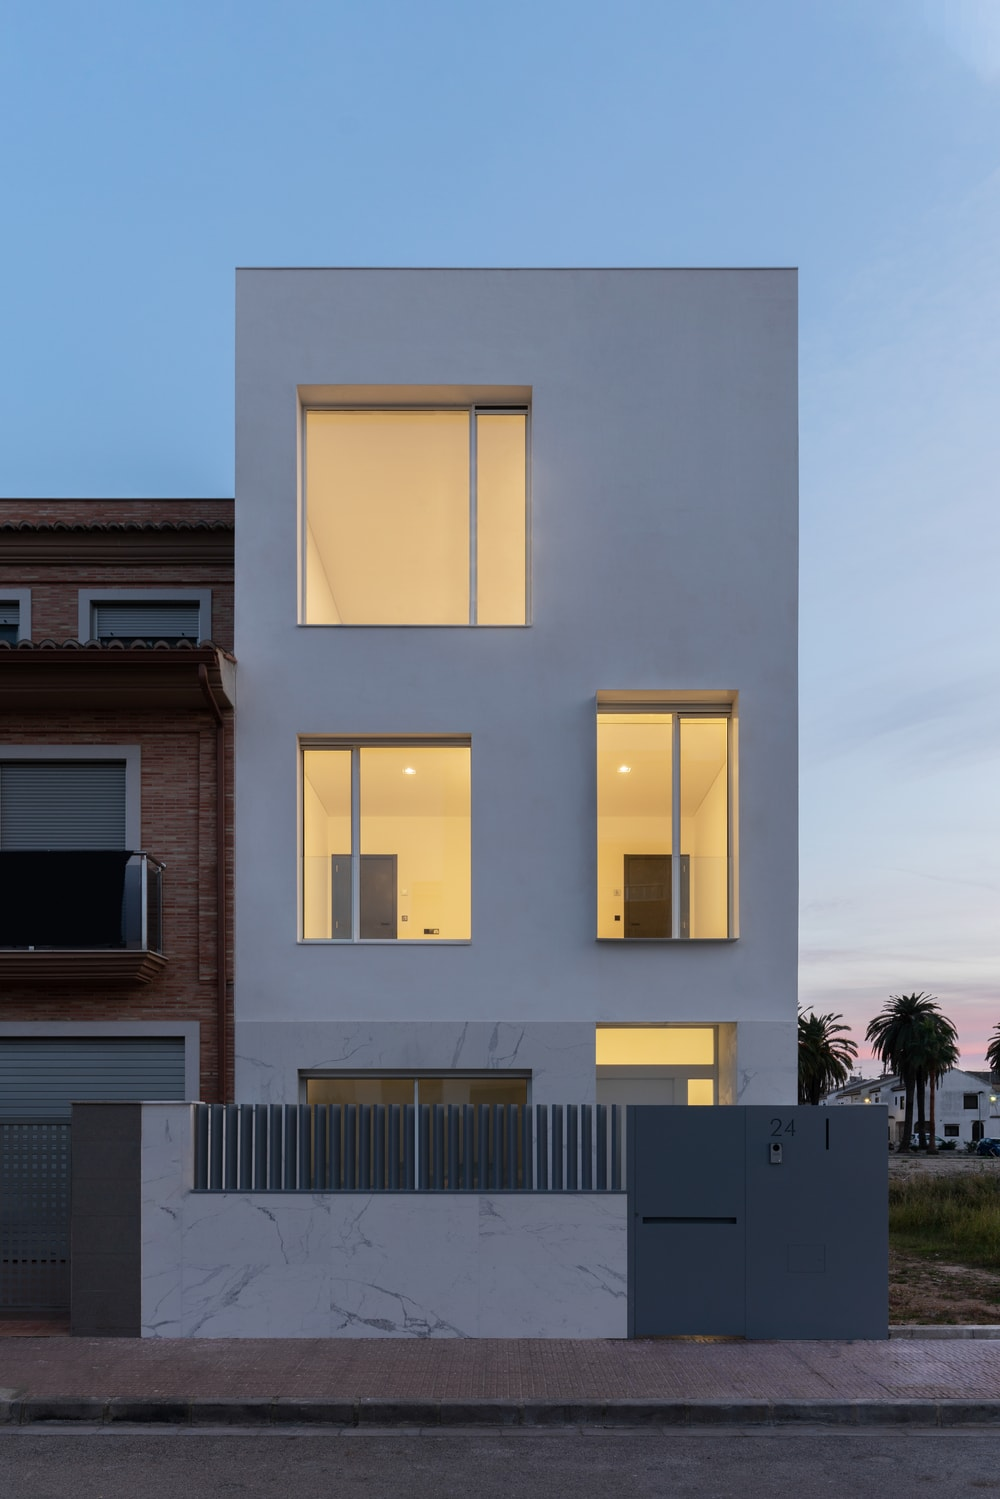 Minimalist house with a modern exterior painted in white.